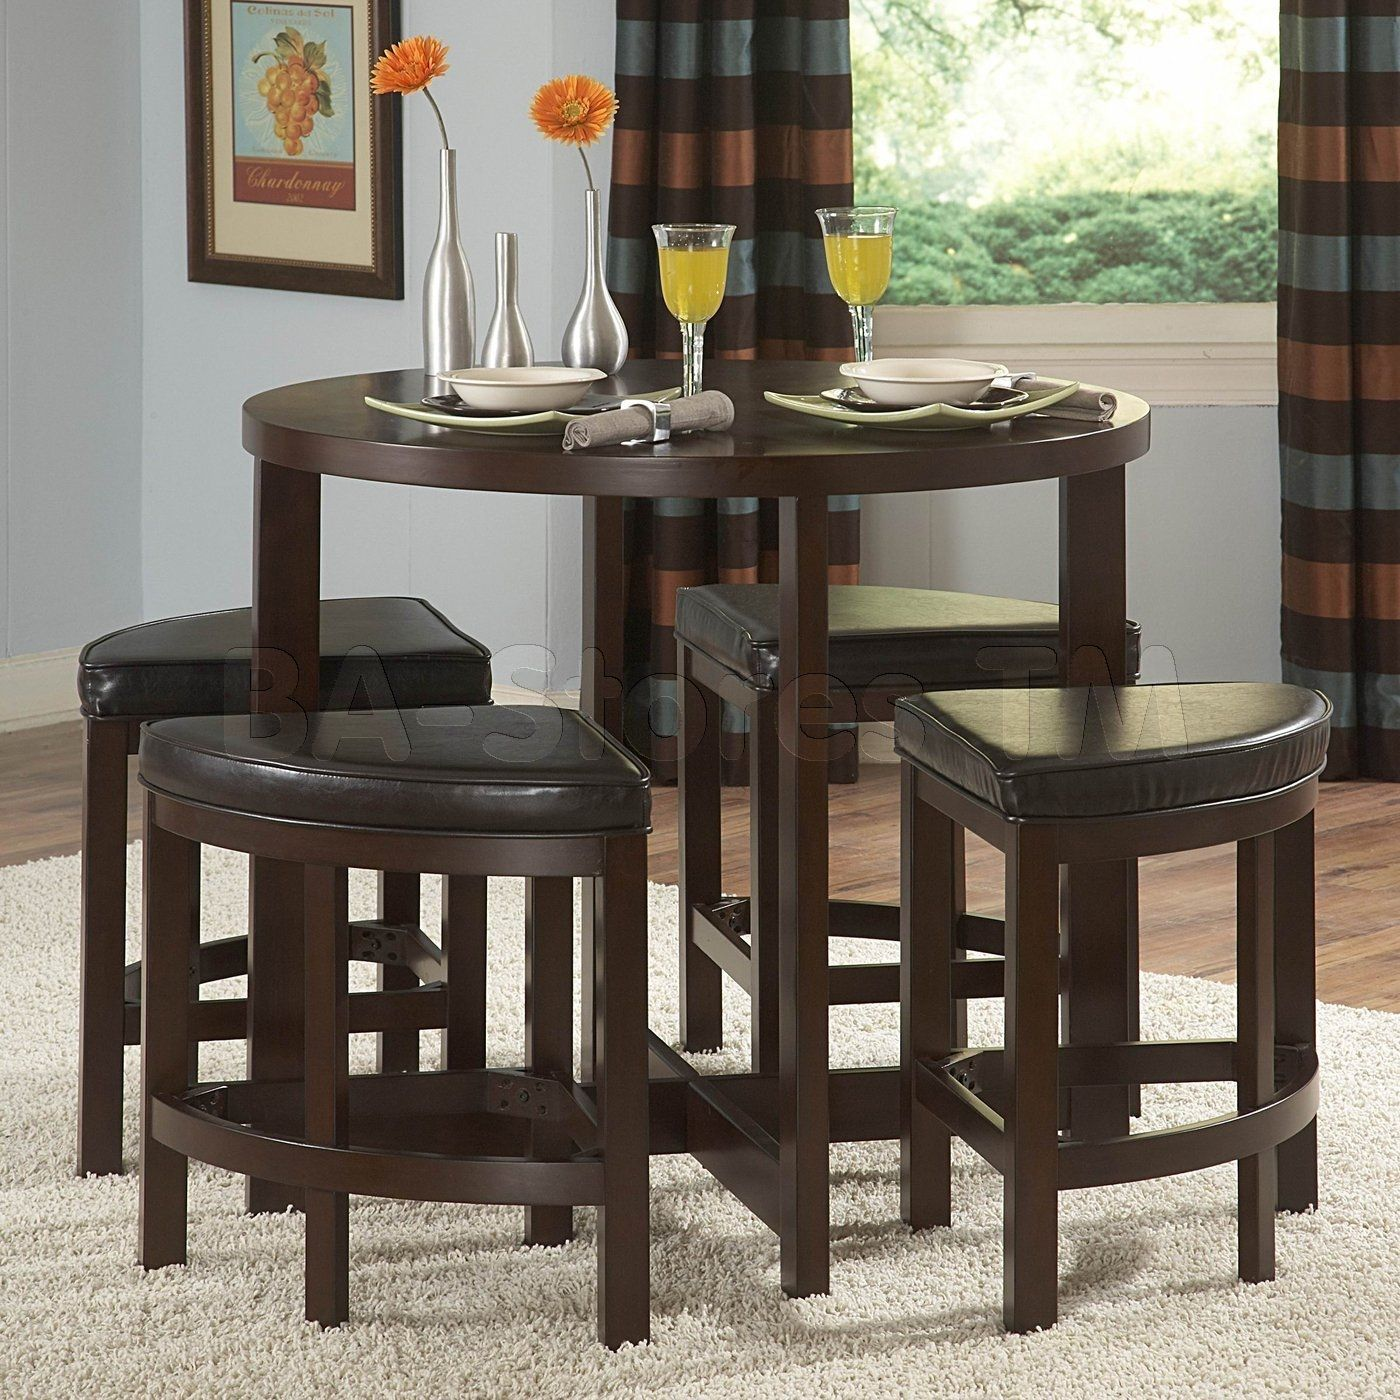 Round dining table and chairs for 4  Round Pub Table And  Chairs  argharts  Pinterest